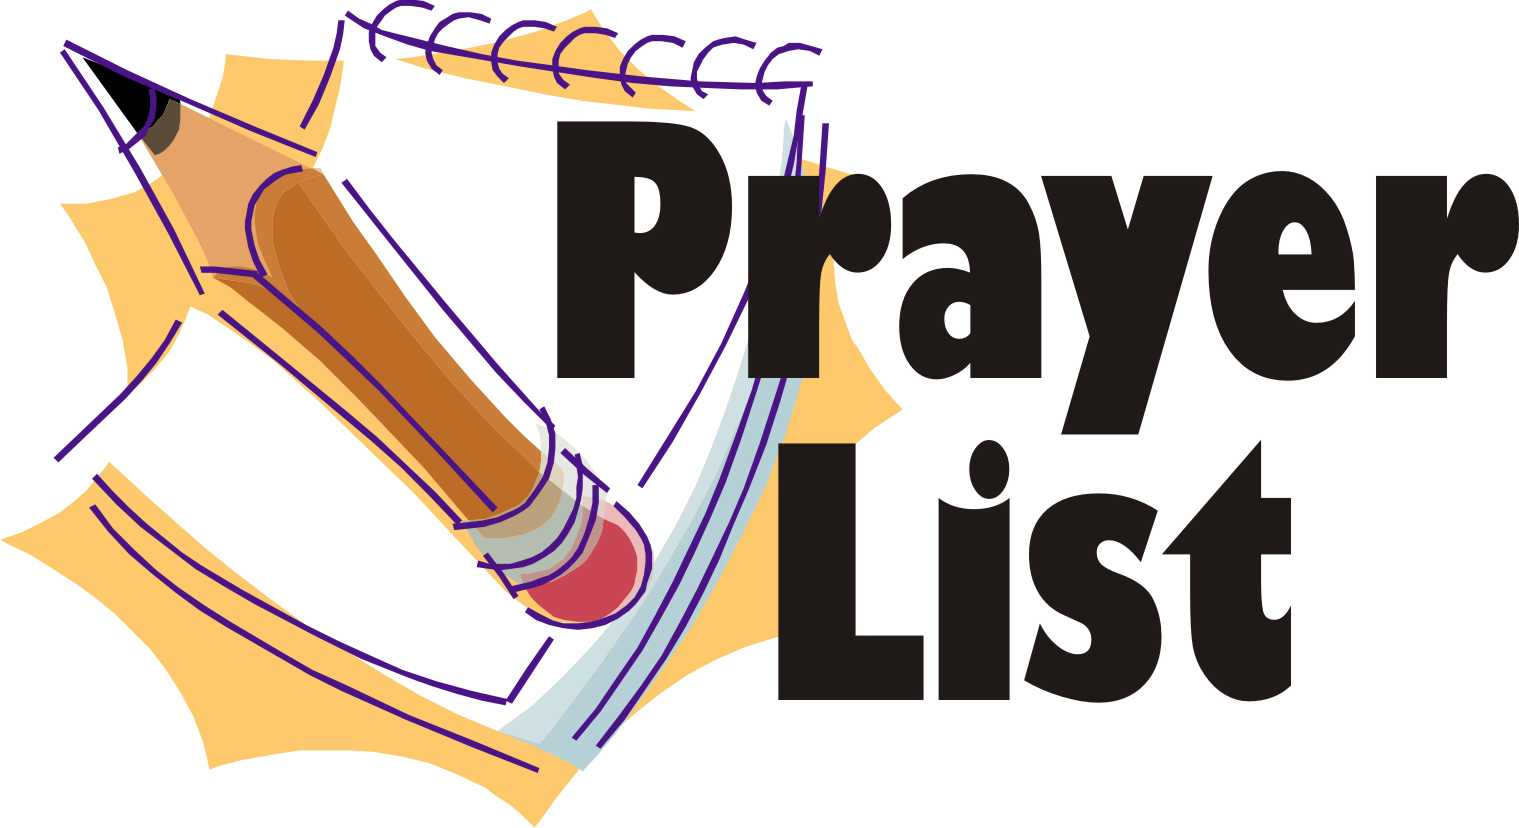 Free Youth Praying Cliparts, Download Free Clip Art, Free.